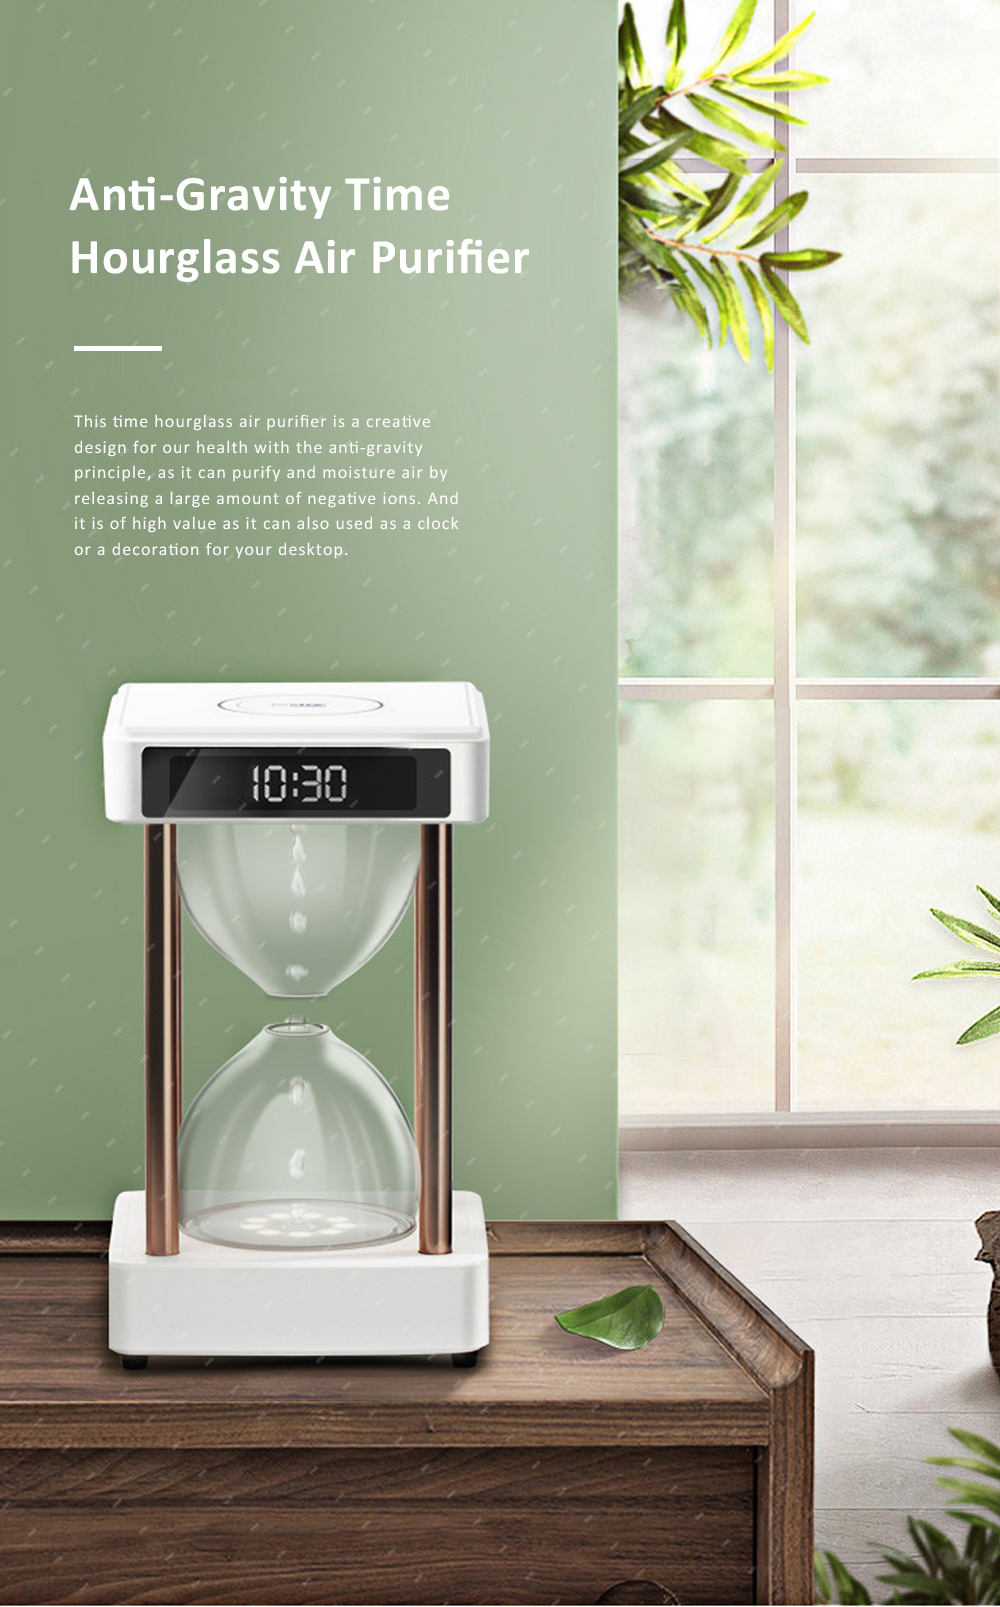 Tinkleo Air Purifier Anti-Gravity Time Hourglass with Water Drops Back Flow Desktop Humidification Deodorization Decoration Gift 0